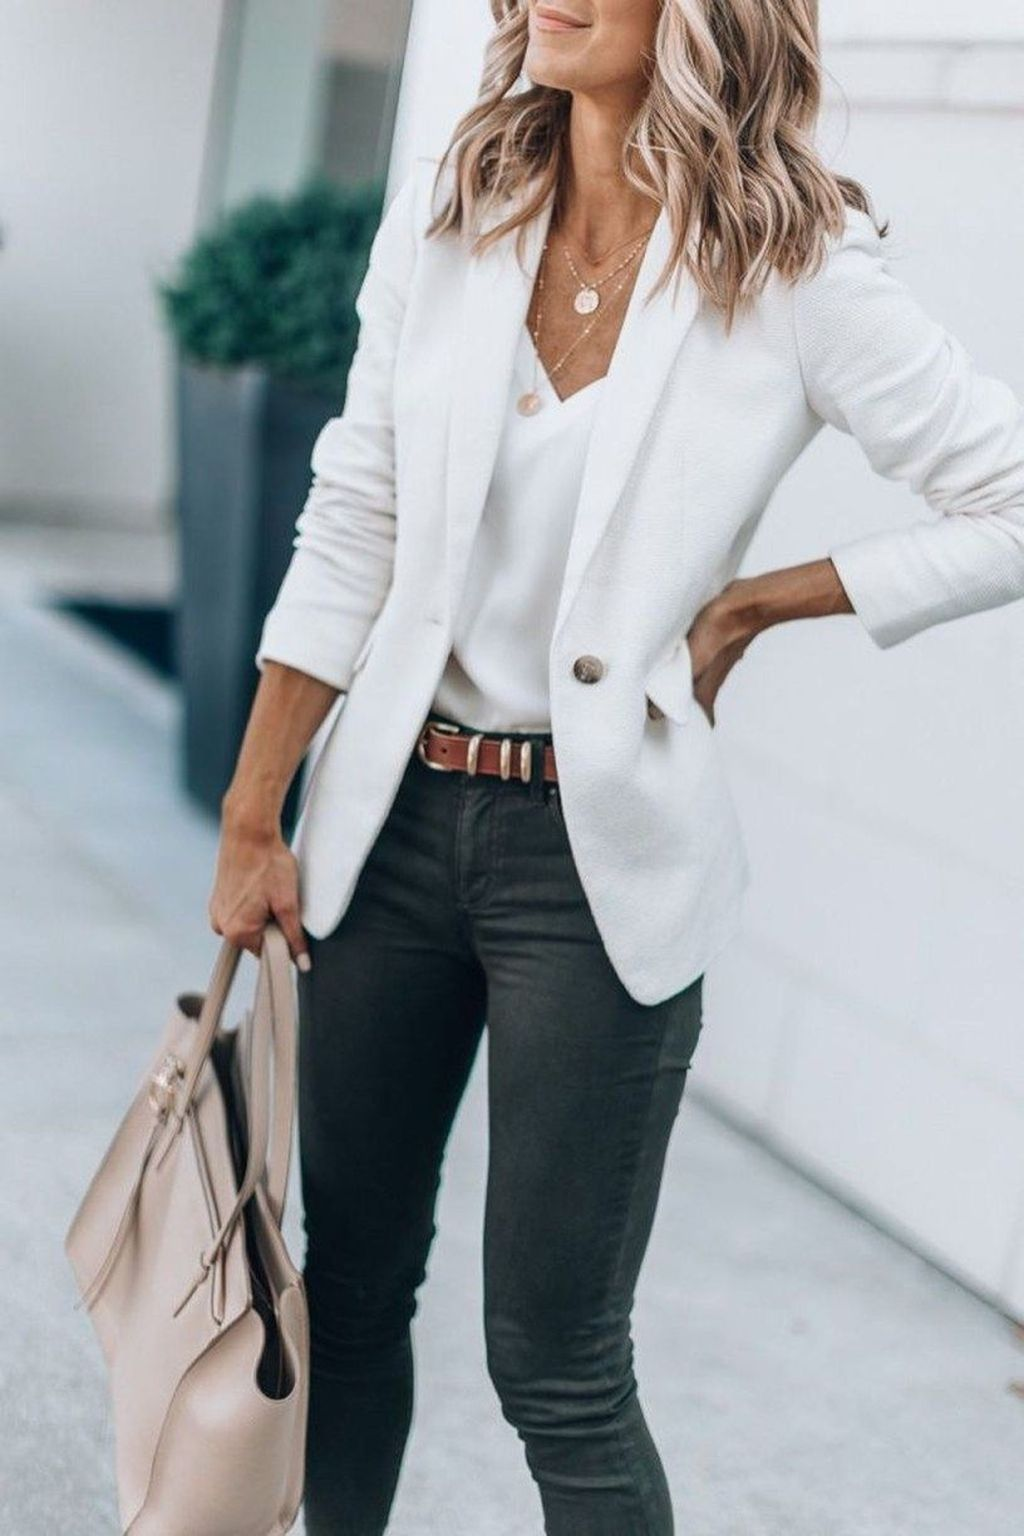 38 Stylish Work Office Outfits Ideas For Women #womensfashion